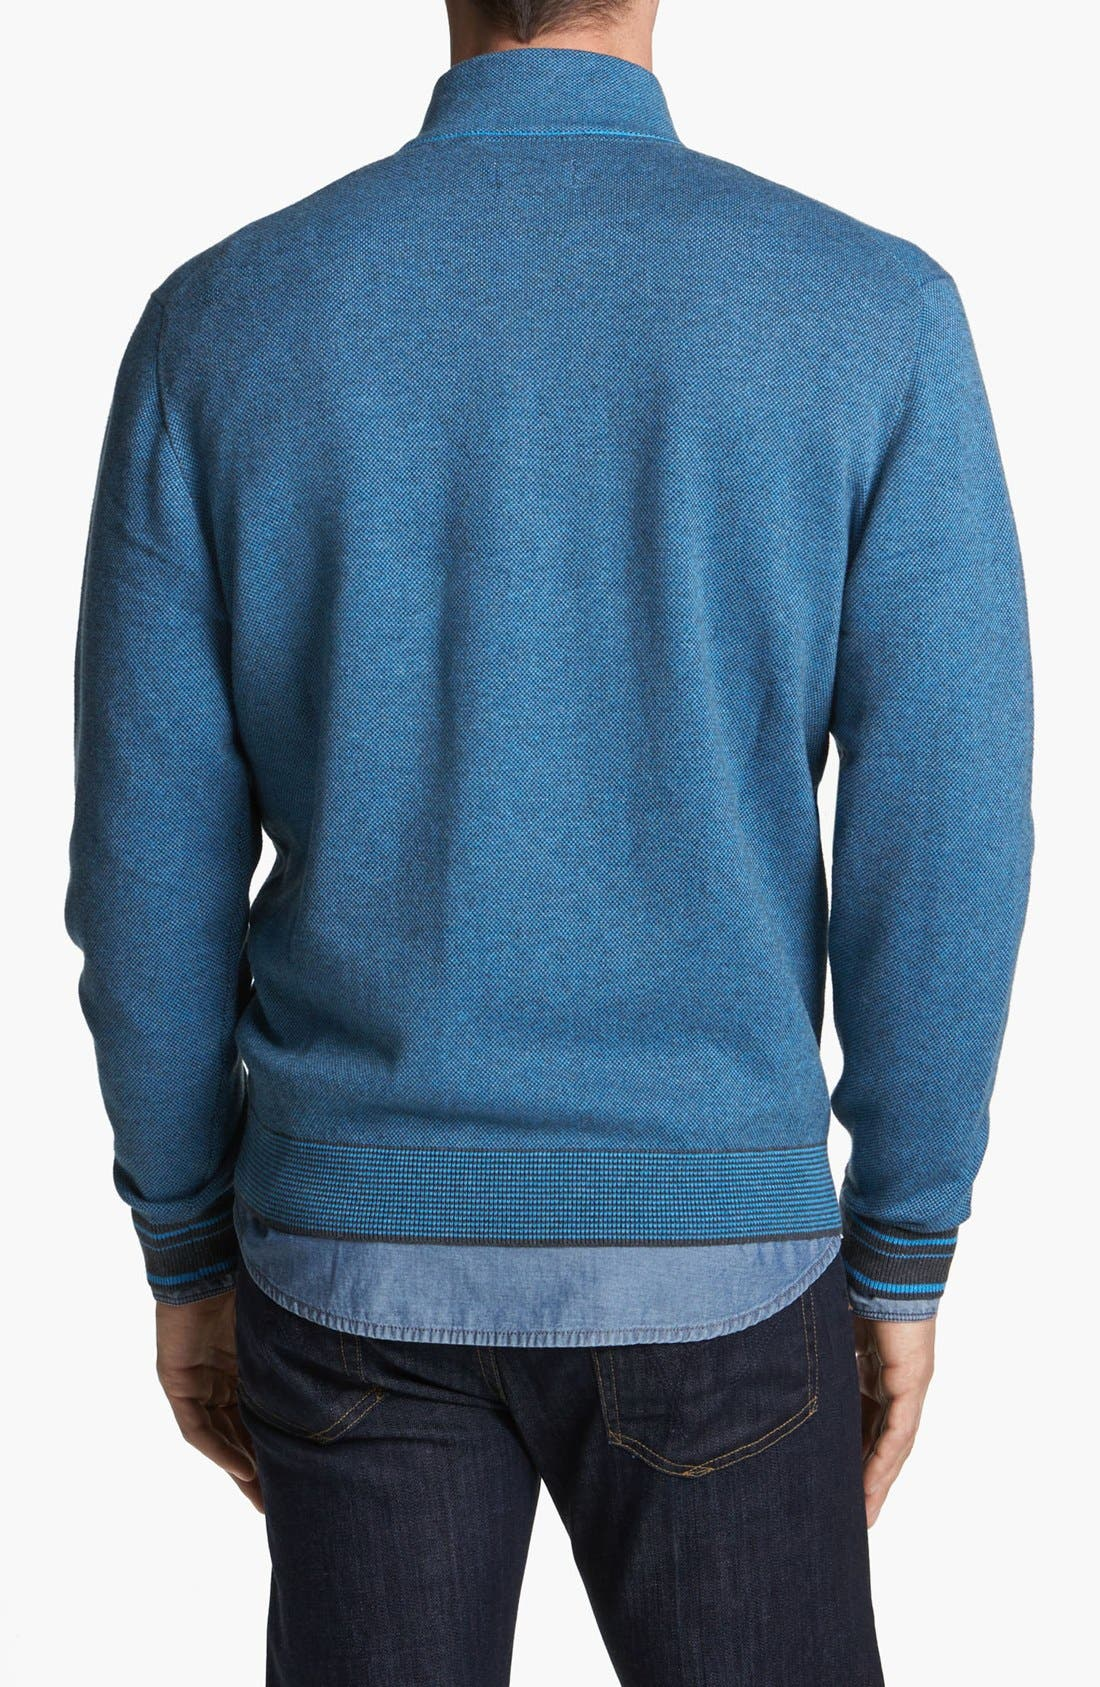 Alternate Image 2  - Cutter & Buck 'Haven' Half Zip Bird's Eye Sweater (Big & Tall)